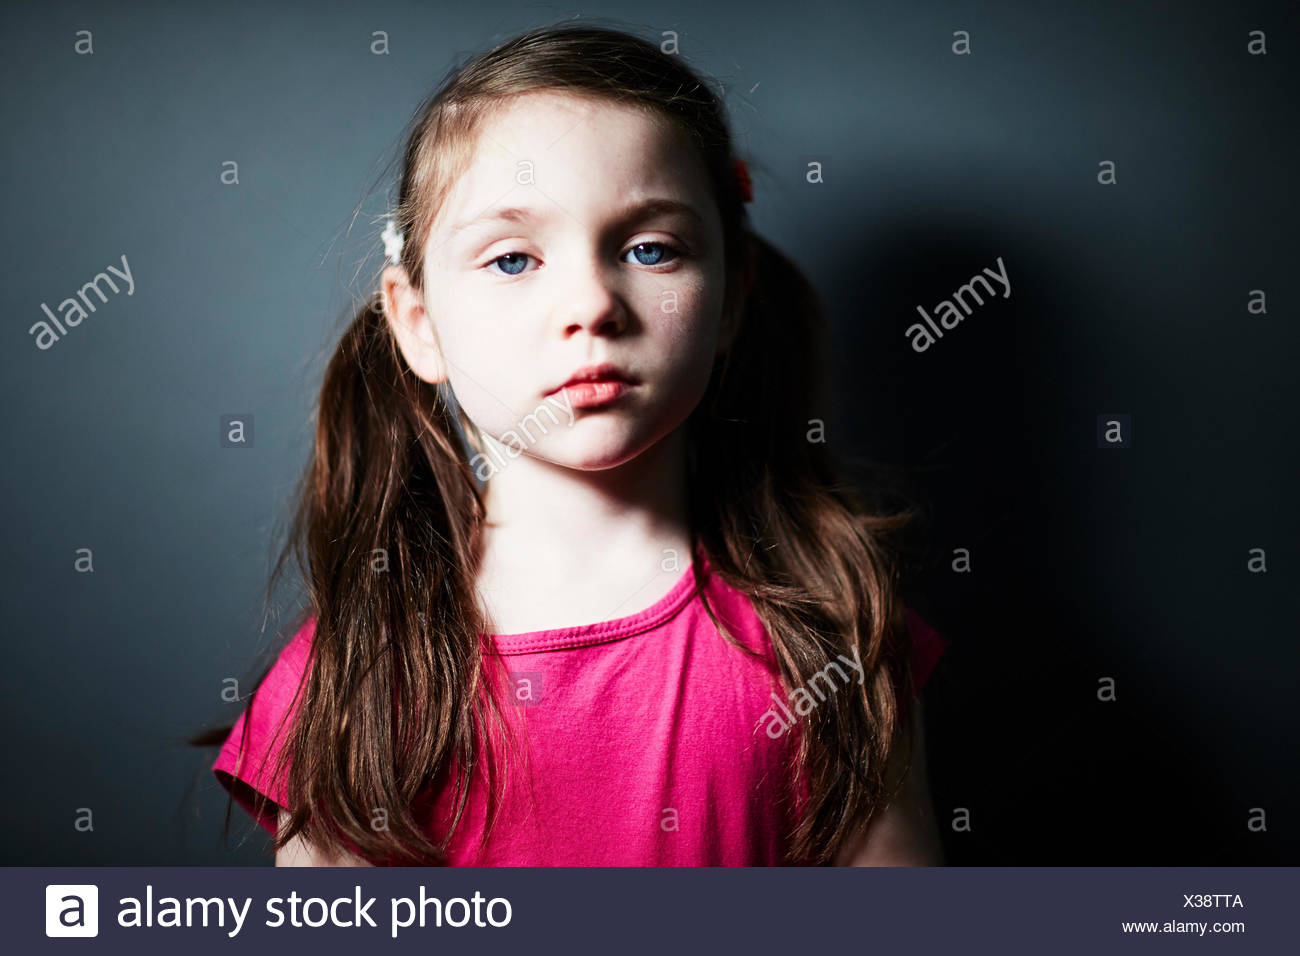 Girl with pigtails - Stock Image